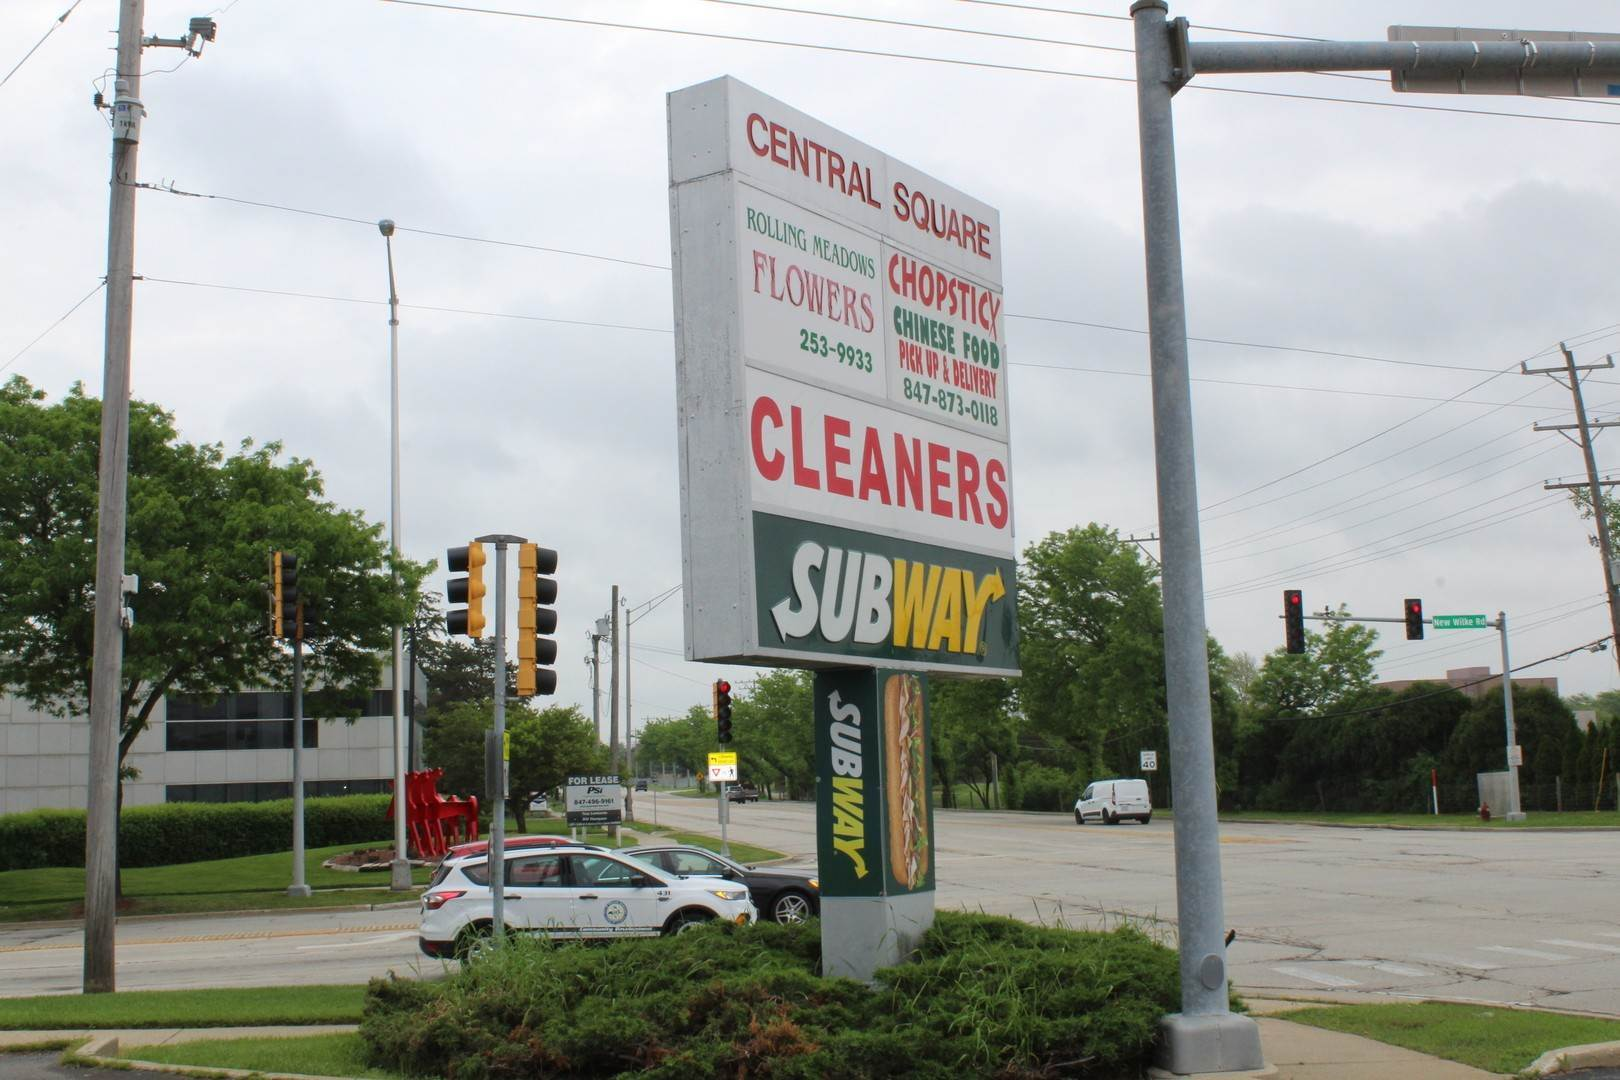 Comercial em 1910 Central Road Rolling Meadows, Illinois 60008 Estados Unidos